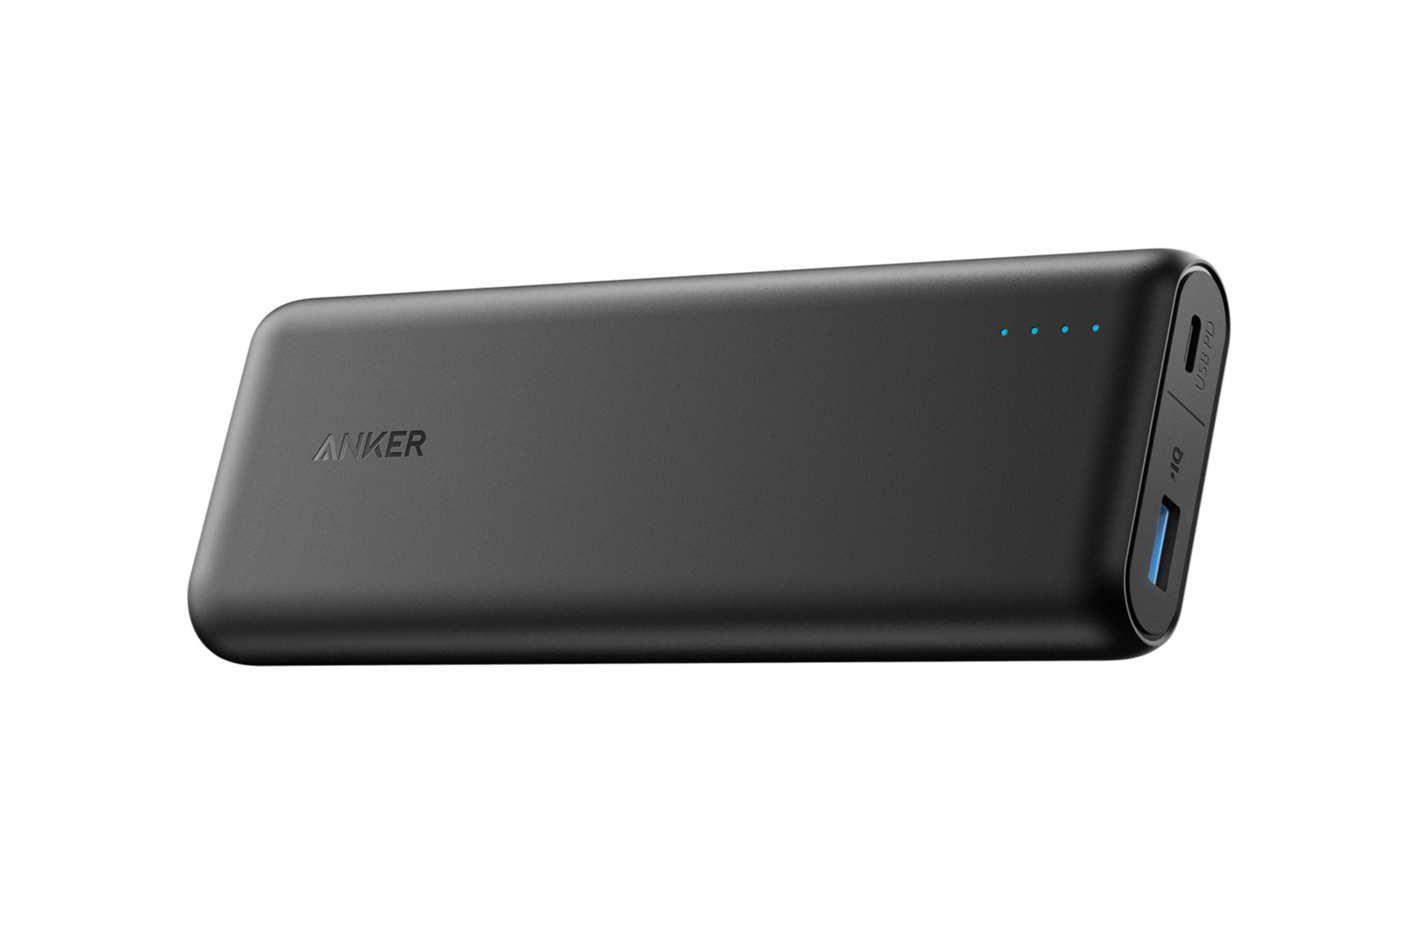 Anker PowerCore Speed 20100 with USB-C Power Delivery and USB-A